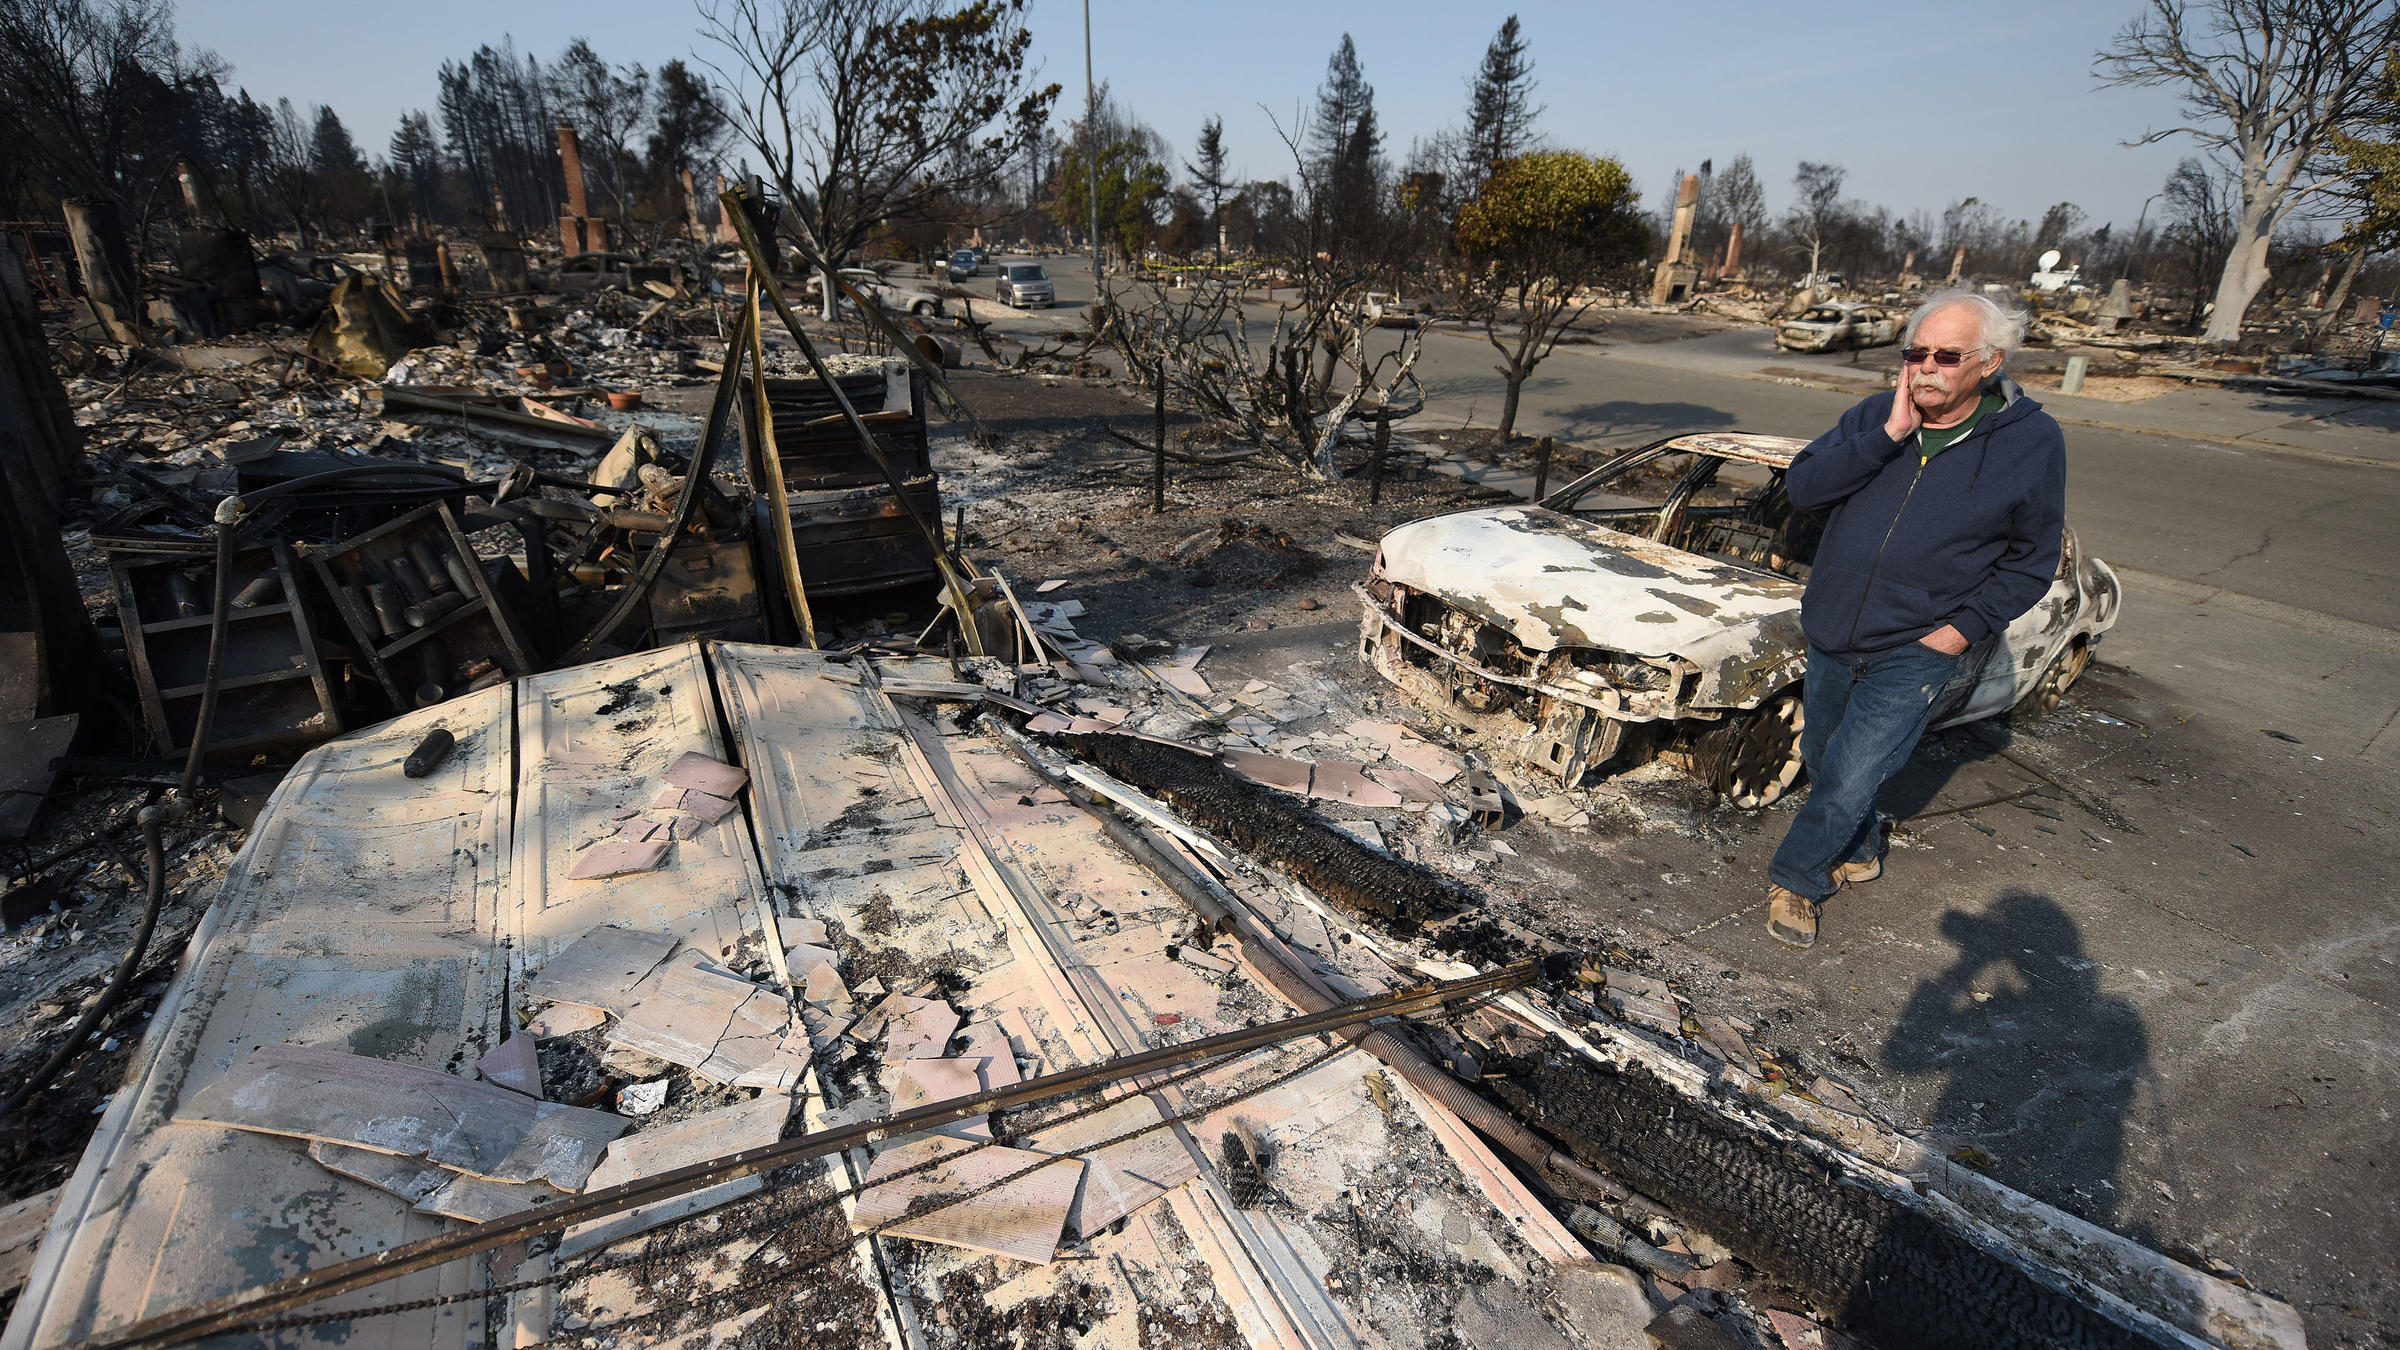 Death toll rises to 23 in NorCal wildfires; hundreds still missing